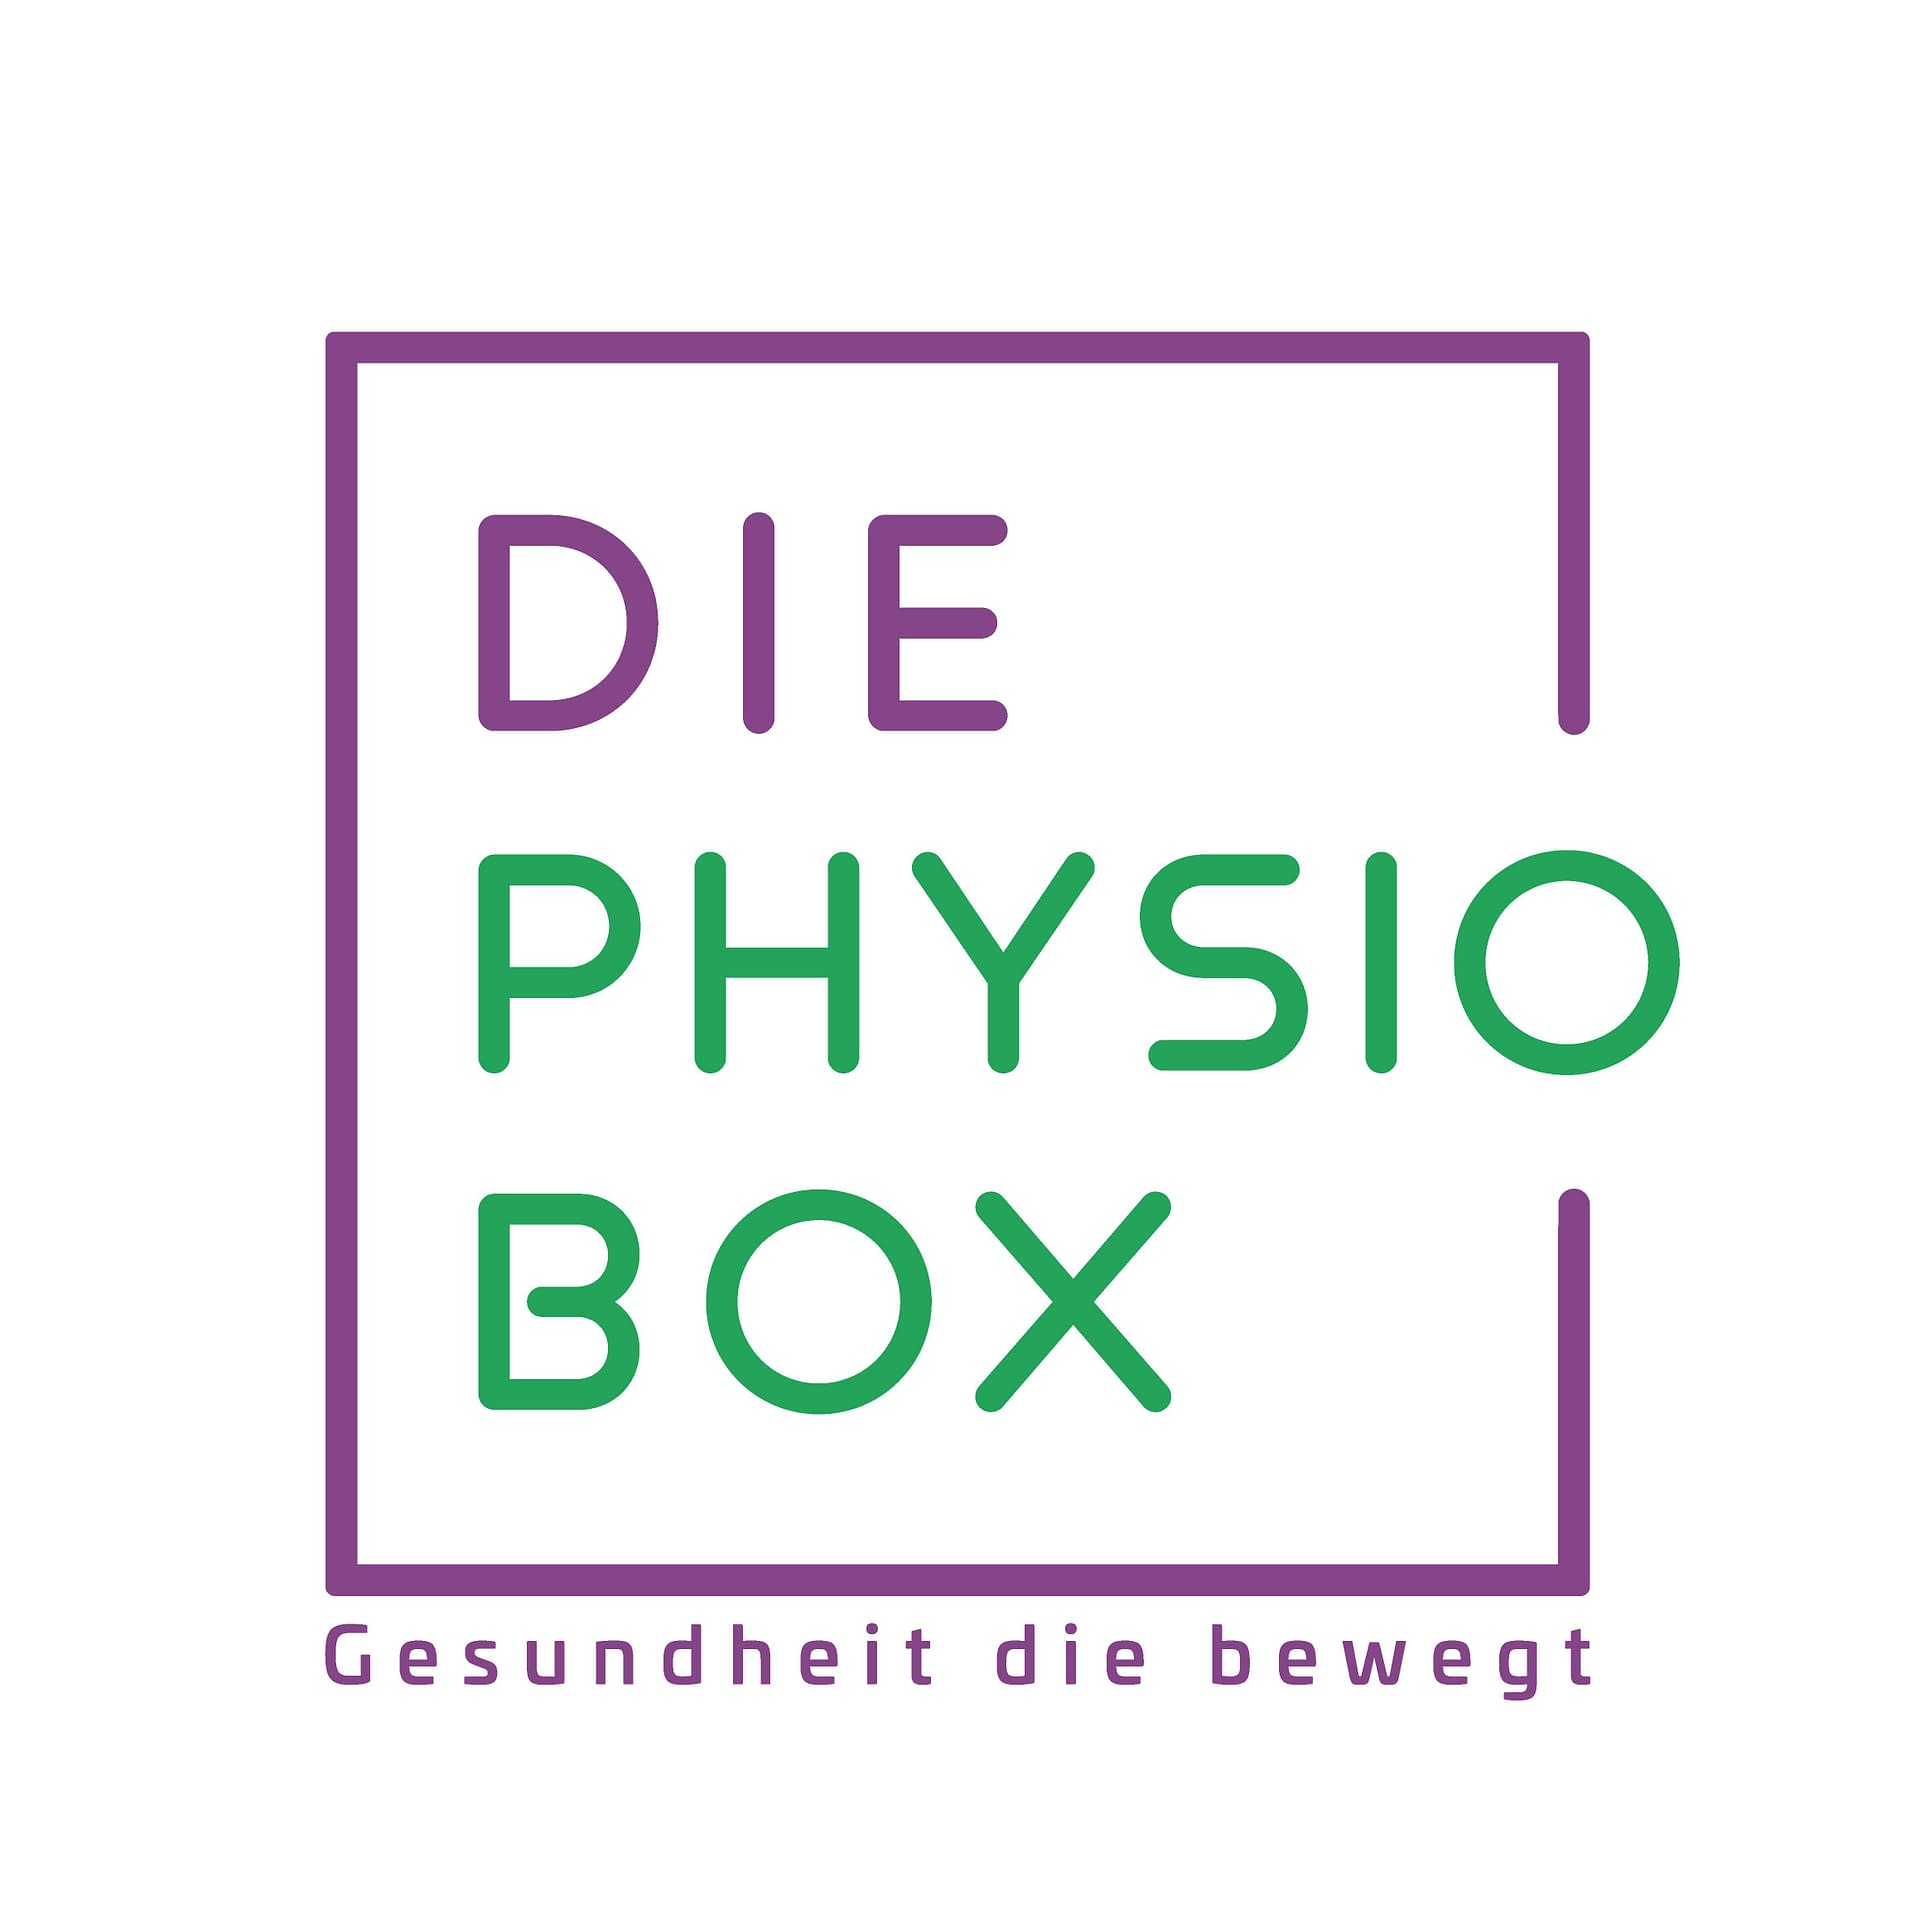 Die Physiobox logo